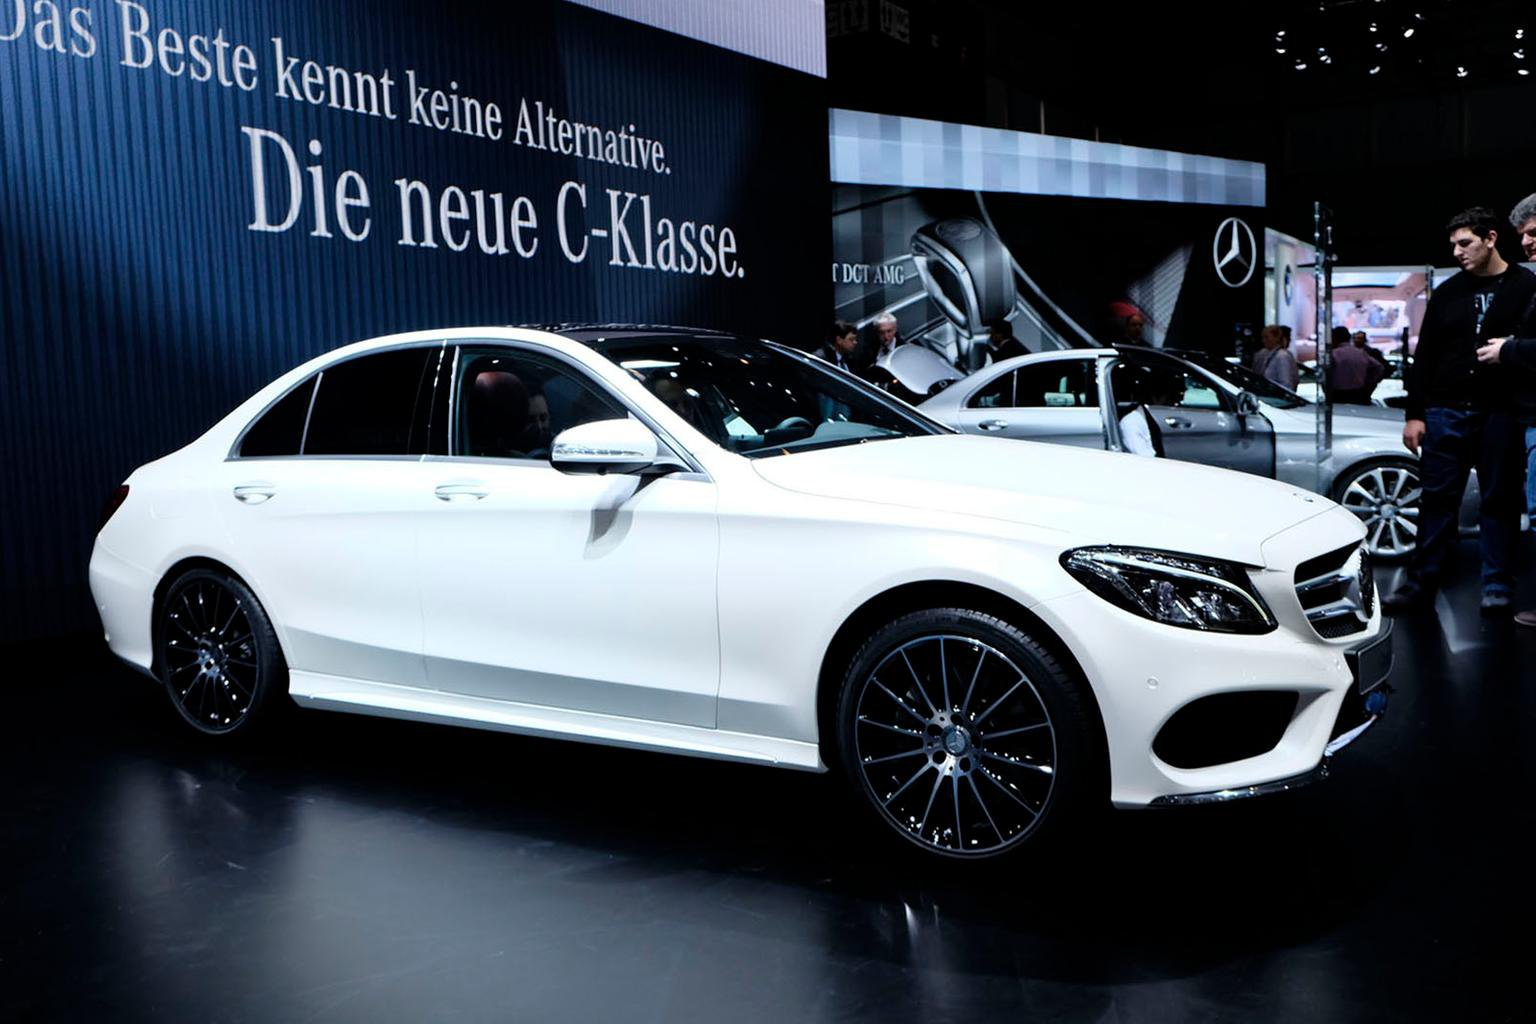 2014 motor show round-up - the key launches of the year